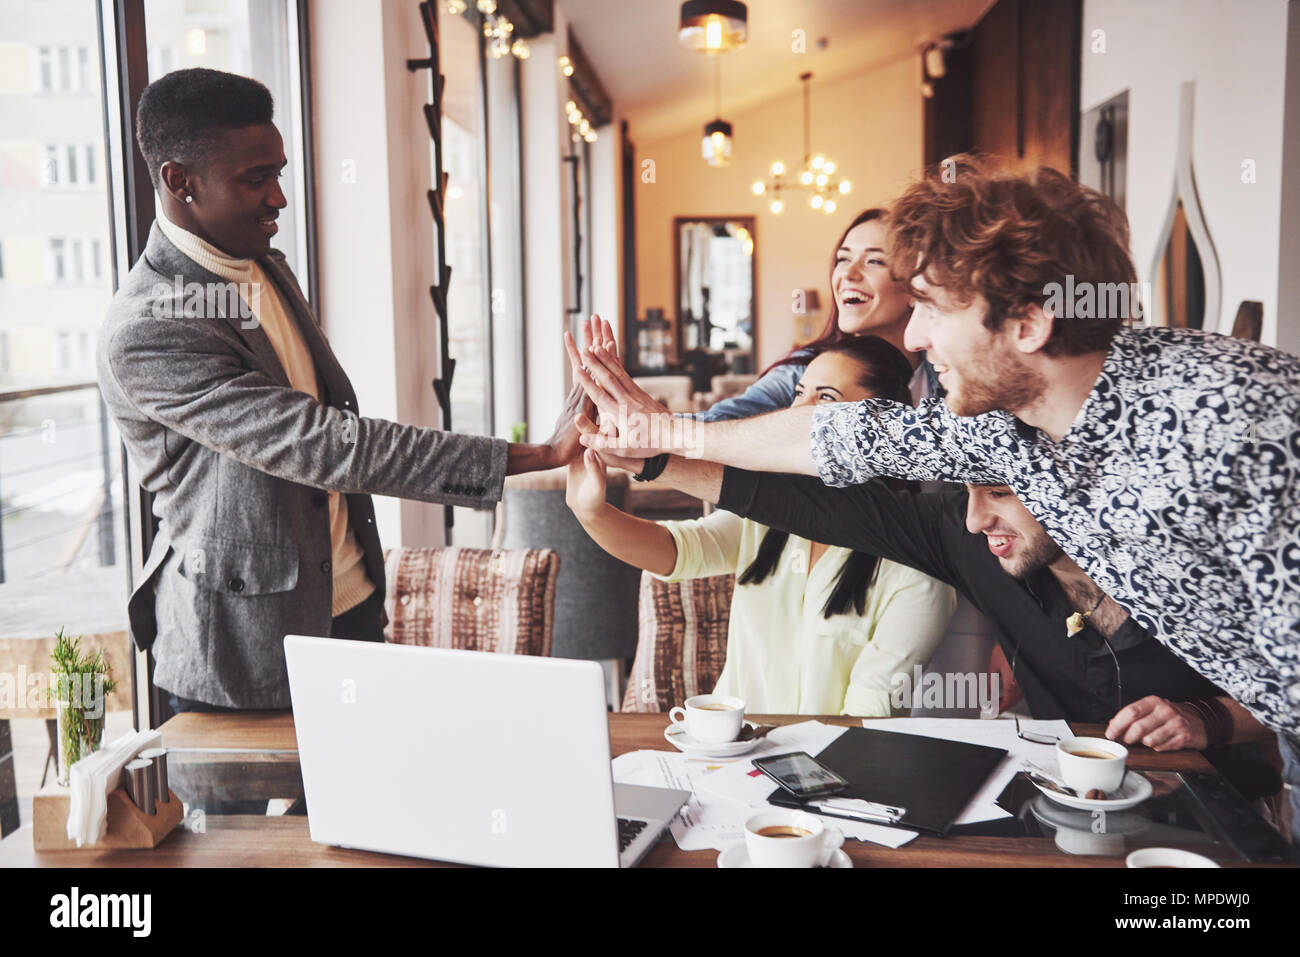 Happy young entrepreneurs in casual clothes at cafe table or in business office giving high fives to each other as if celebrating success or starting new project - Stock Image